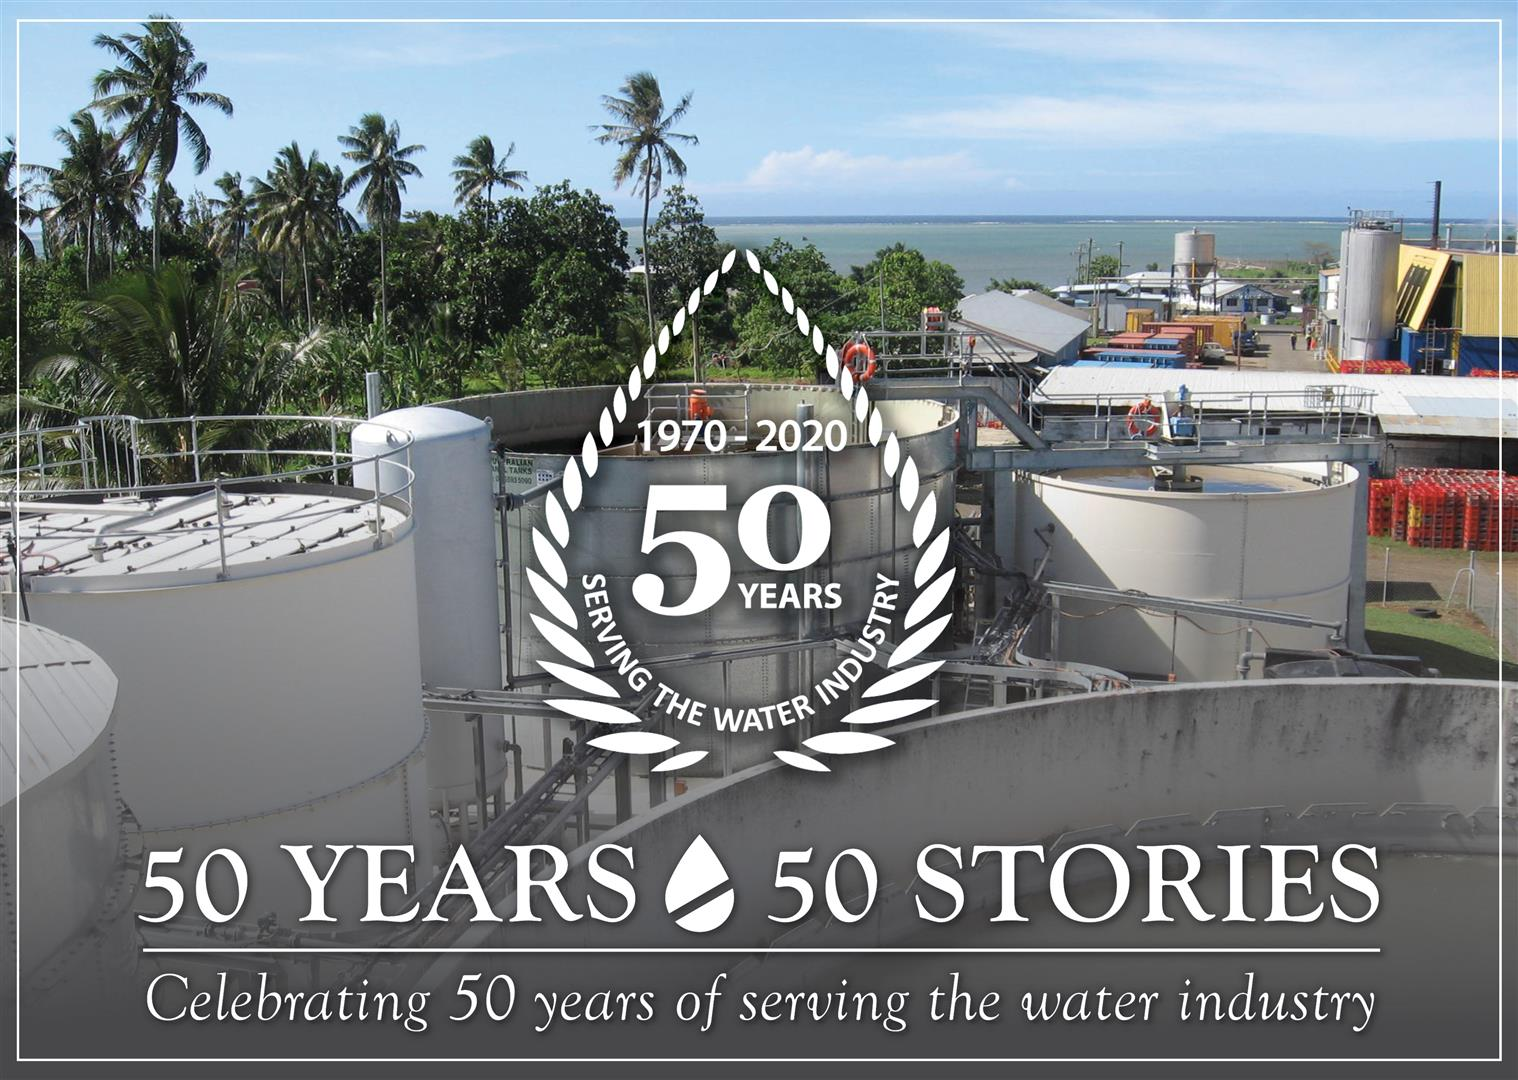 50 Years - 50 Stories: Carlton United Brewery - Samoa Wastewater Treatment Plant - A First for Samoa!